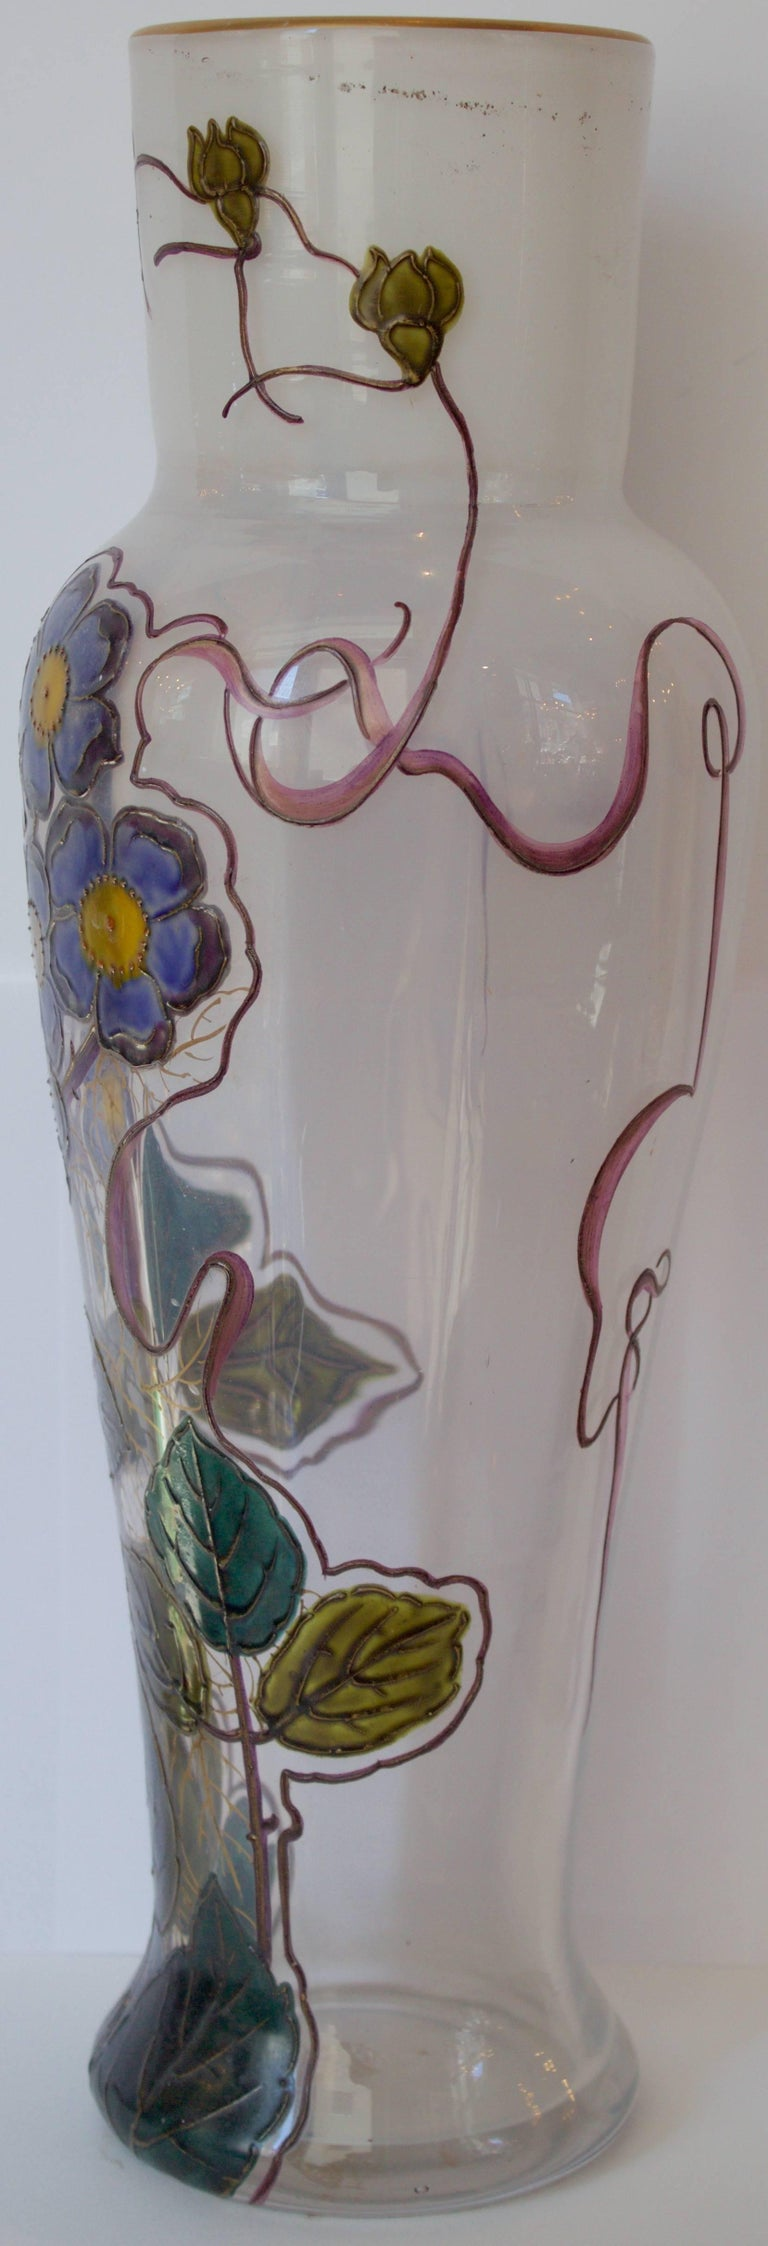 "French 19th Century Glass Vase by Legras Signed "" Montjoye L&Cie"" 3"